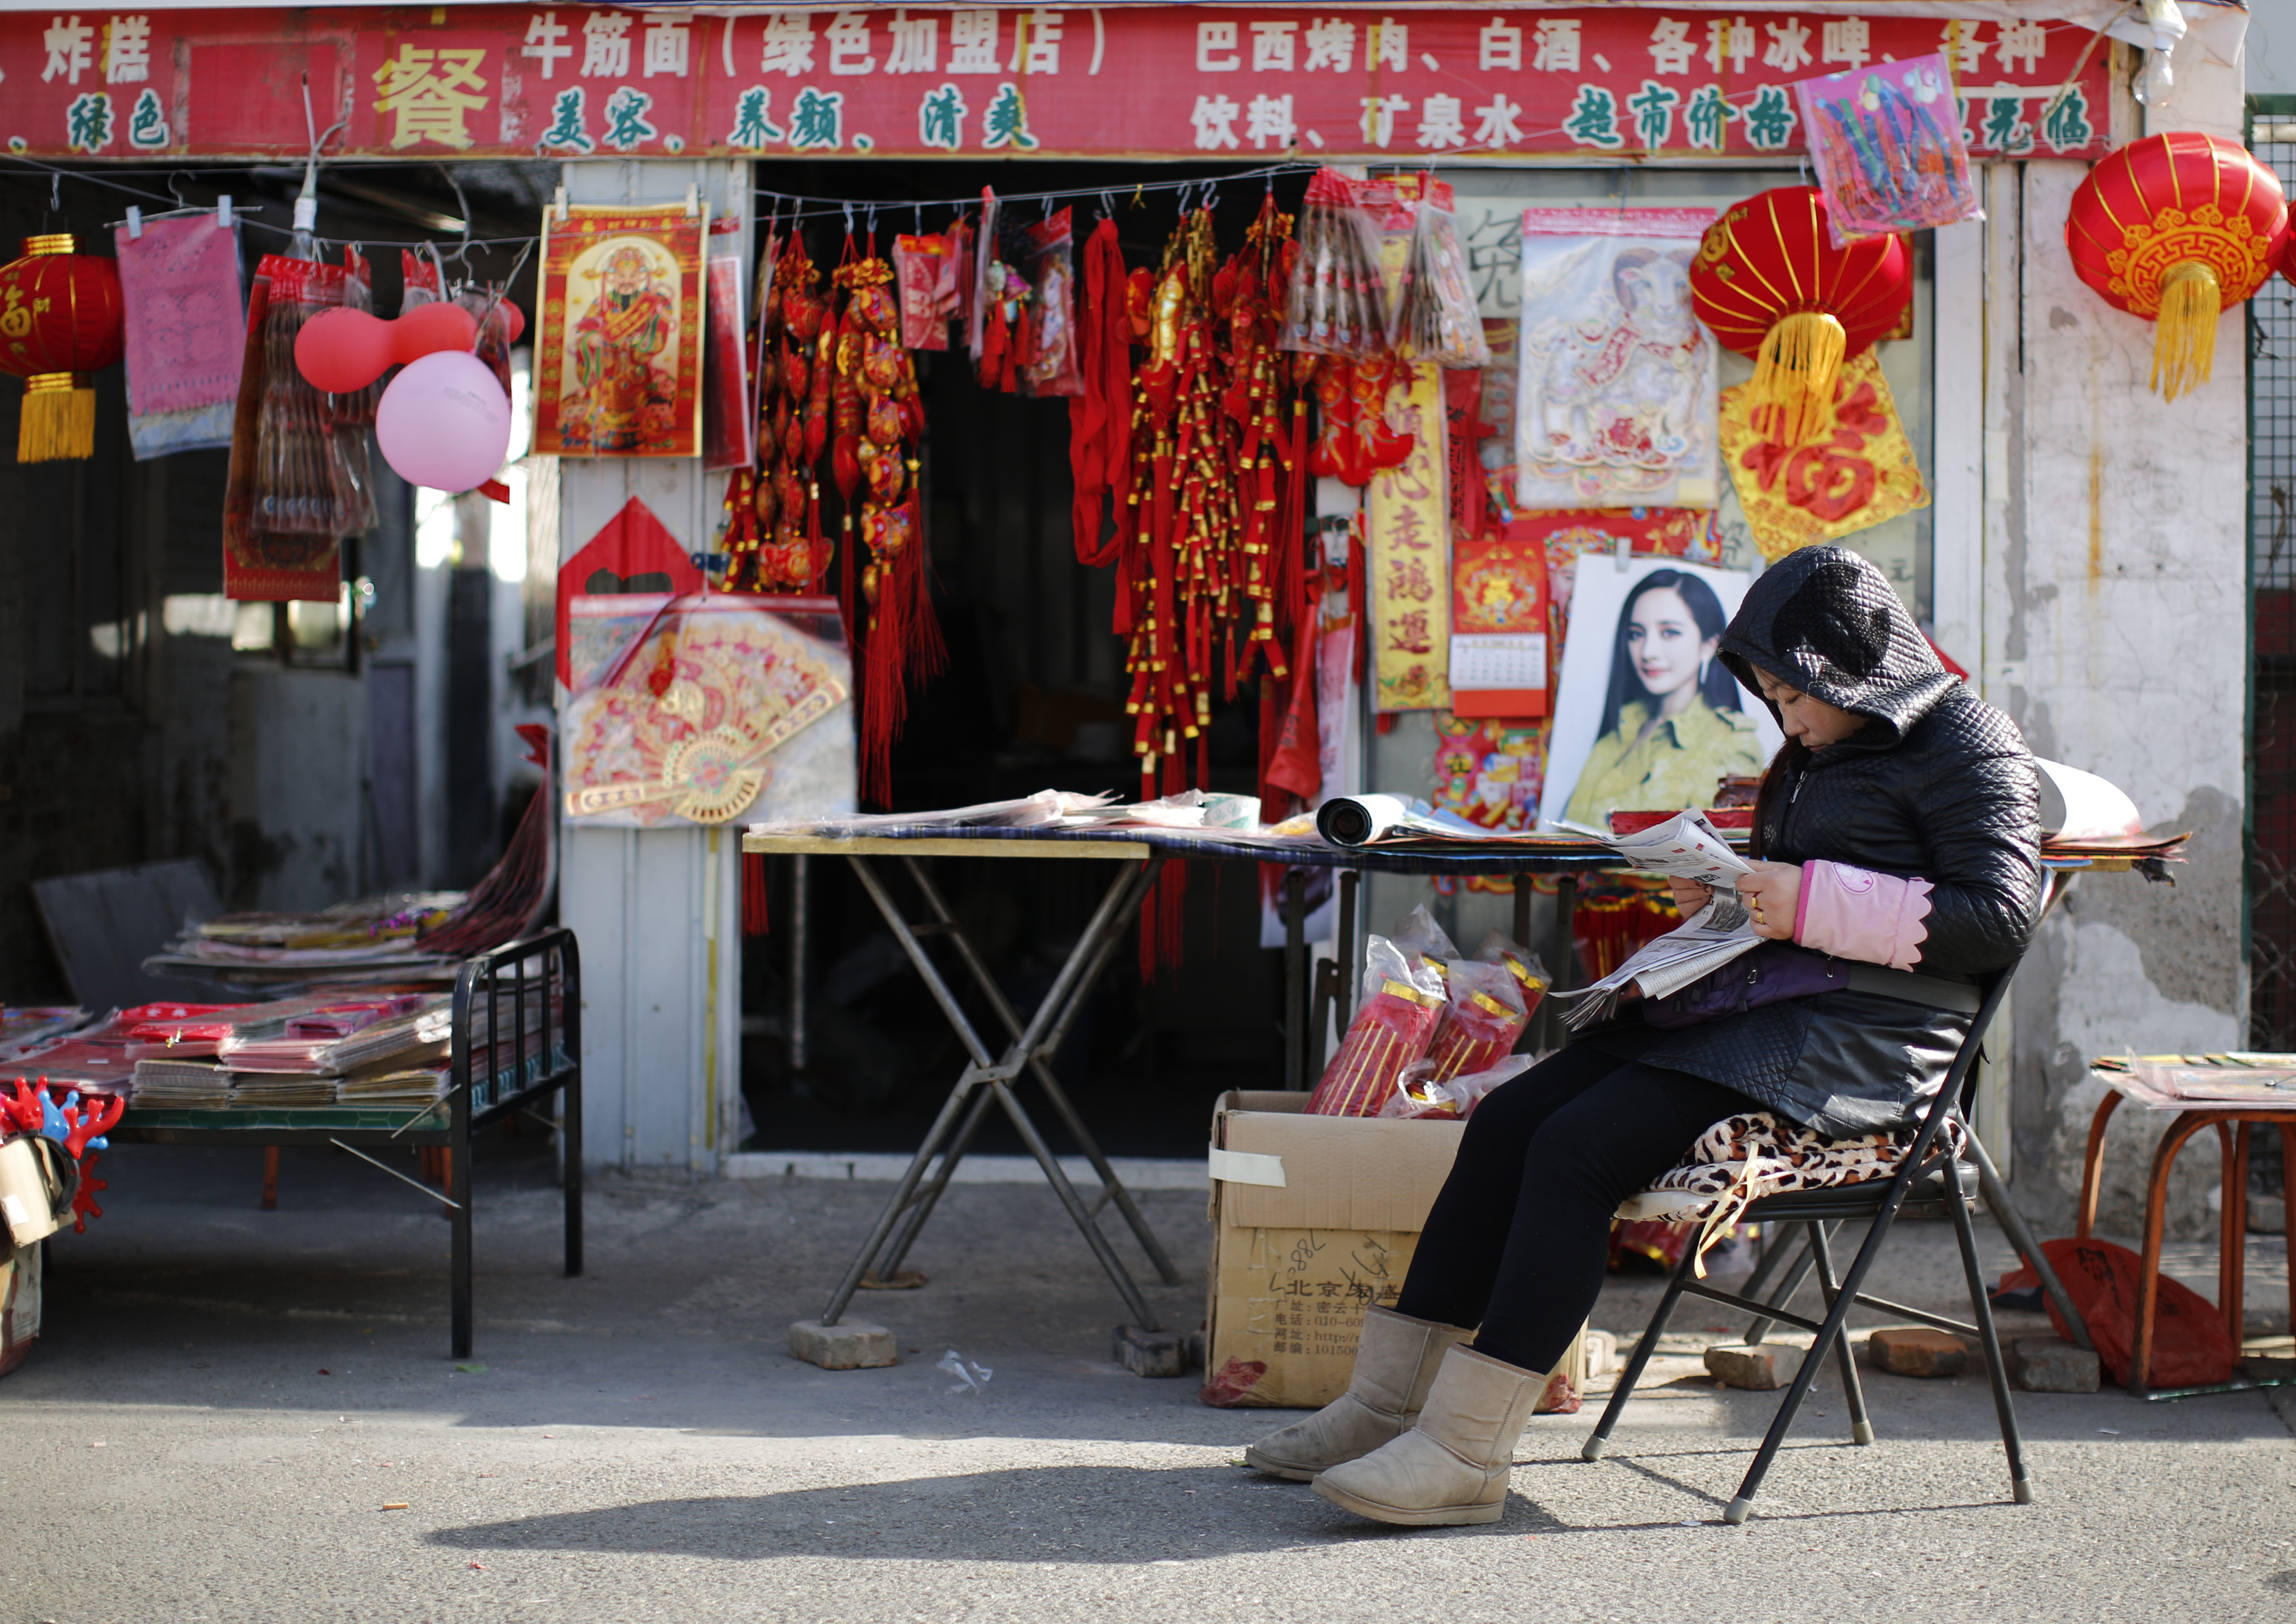 A vendor, selling traditional decorations for the upcoming Chinese Lunar New Year, reads a newspaper as she waits for customers at a migrant workers' village in Beijing February 12, 2015. Photo by Kim  Kyung-Hoon/REUTERS.